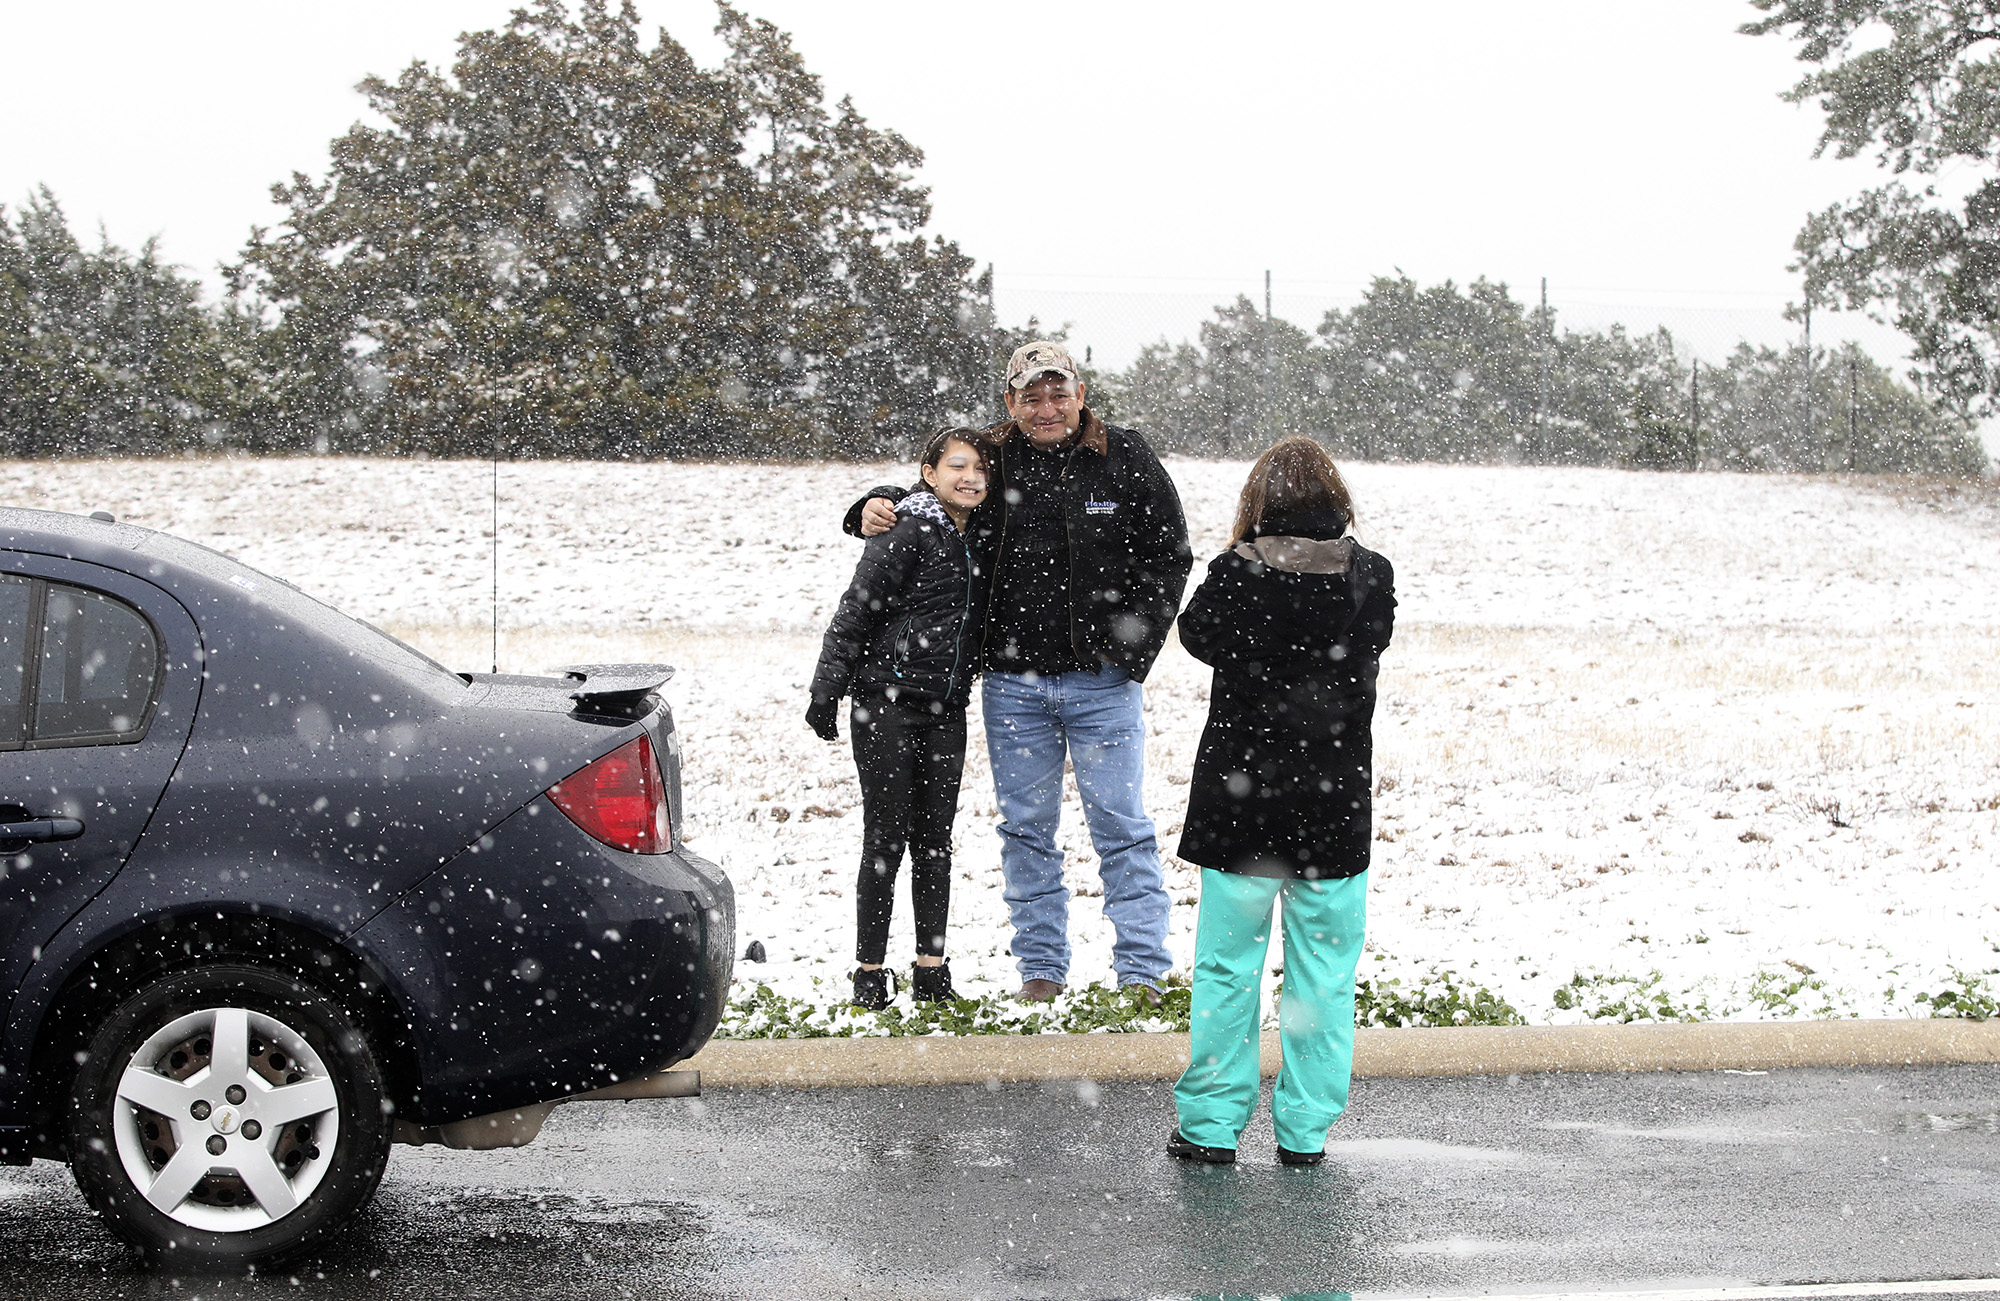 Snow Covers Parts Of Texas But No Chance For San Antonio